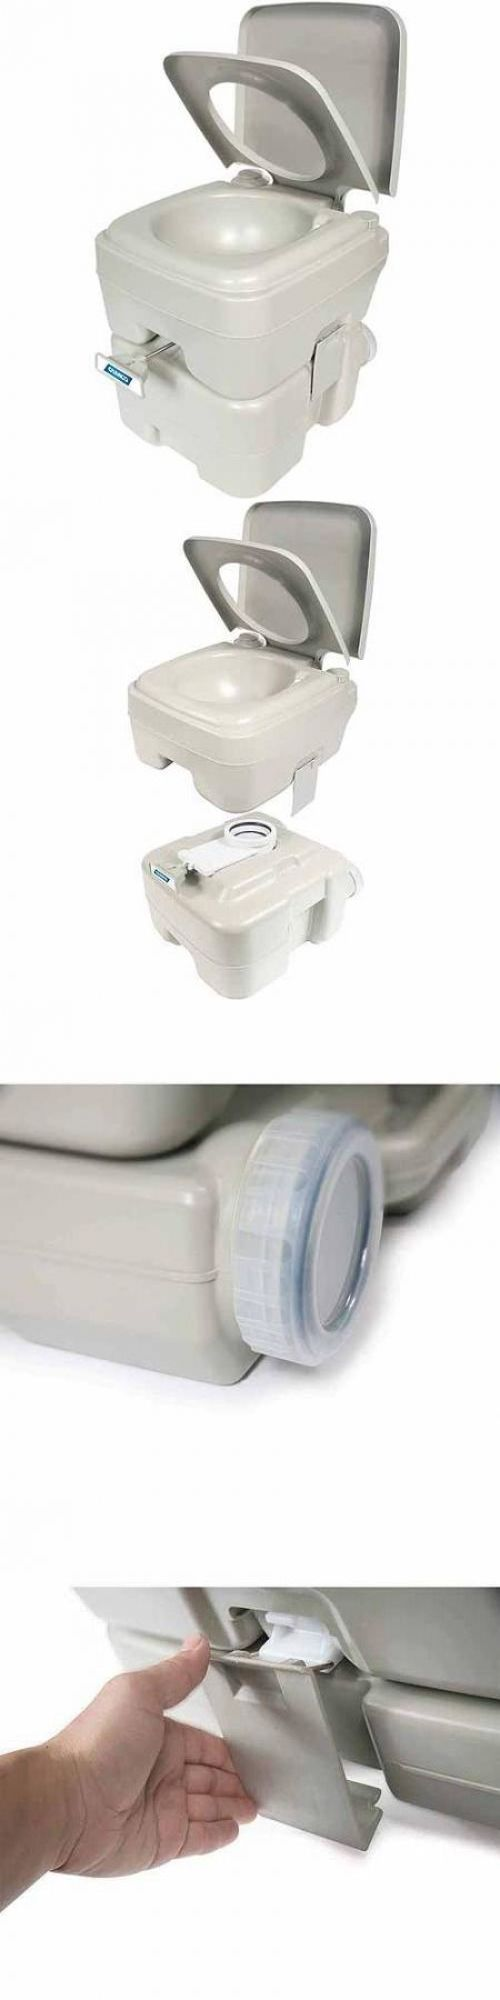 Portable Toilets And Accessories 181397 Camping Toilet 53 Gal Flushing Chemical Commode Rv Camper